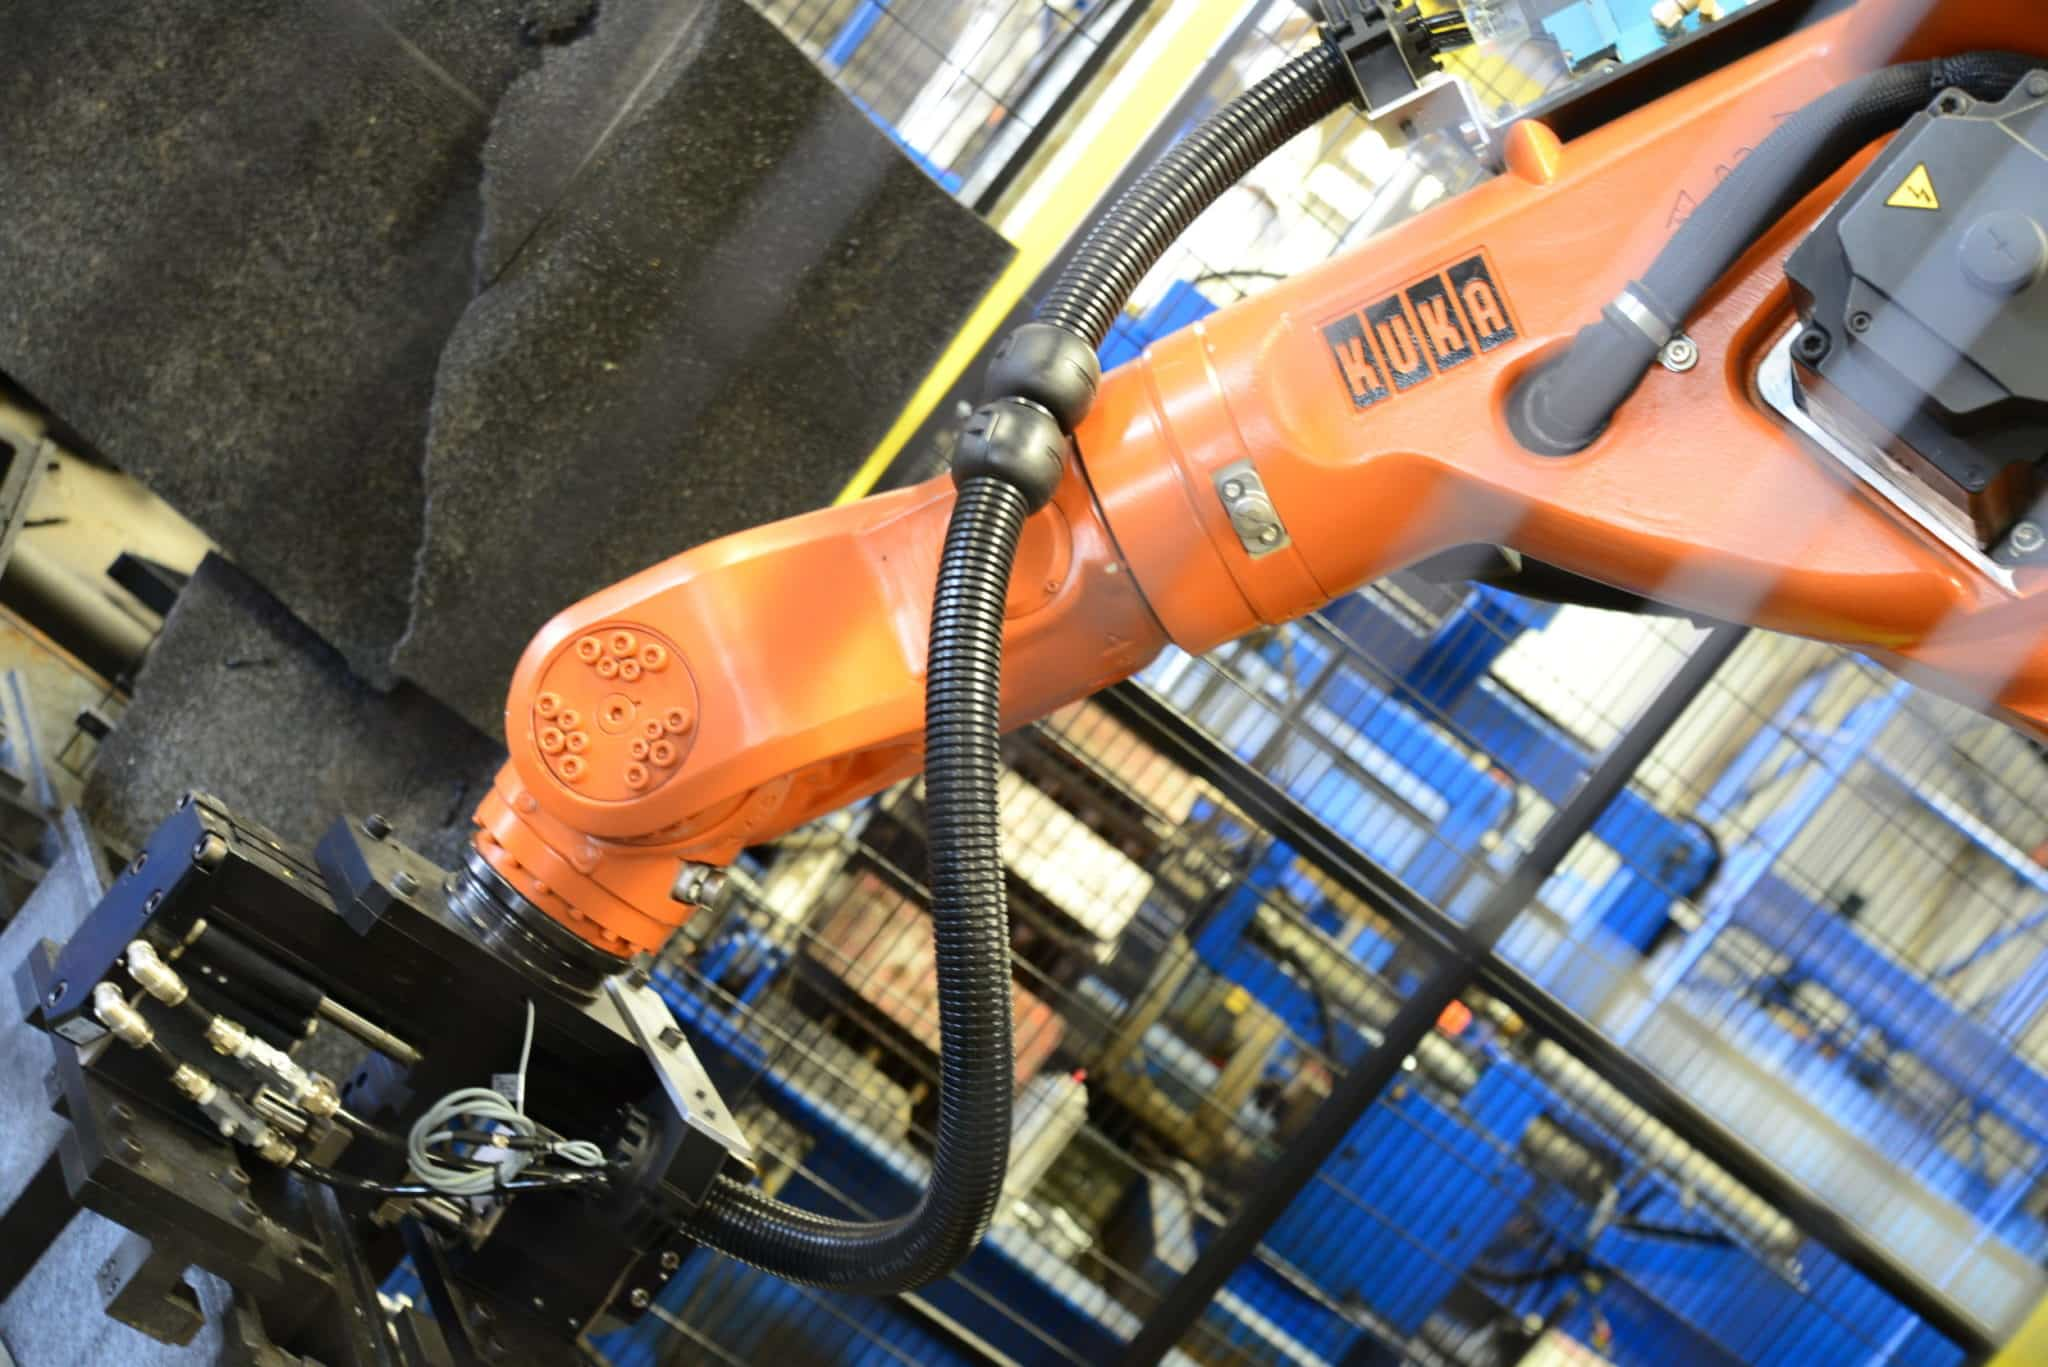 Manage your risks with safe, proven robotics solutions.